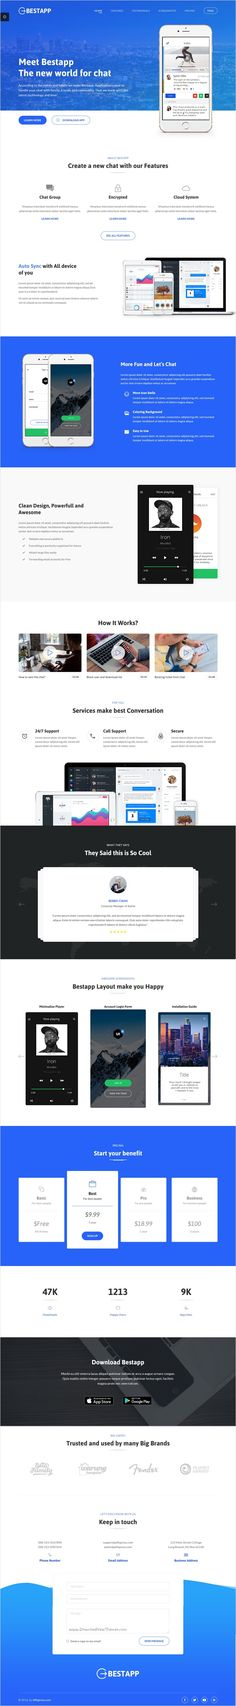 Bestapp is a premium design #bootstrap #template for multipurpose #startups landing page website with 4 different homepage layouts download now➩ https://themeforest.net/item/bestapp-premium-app-showcase-landing-page/17809528?ref=Datasata